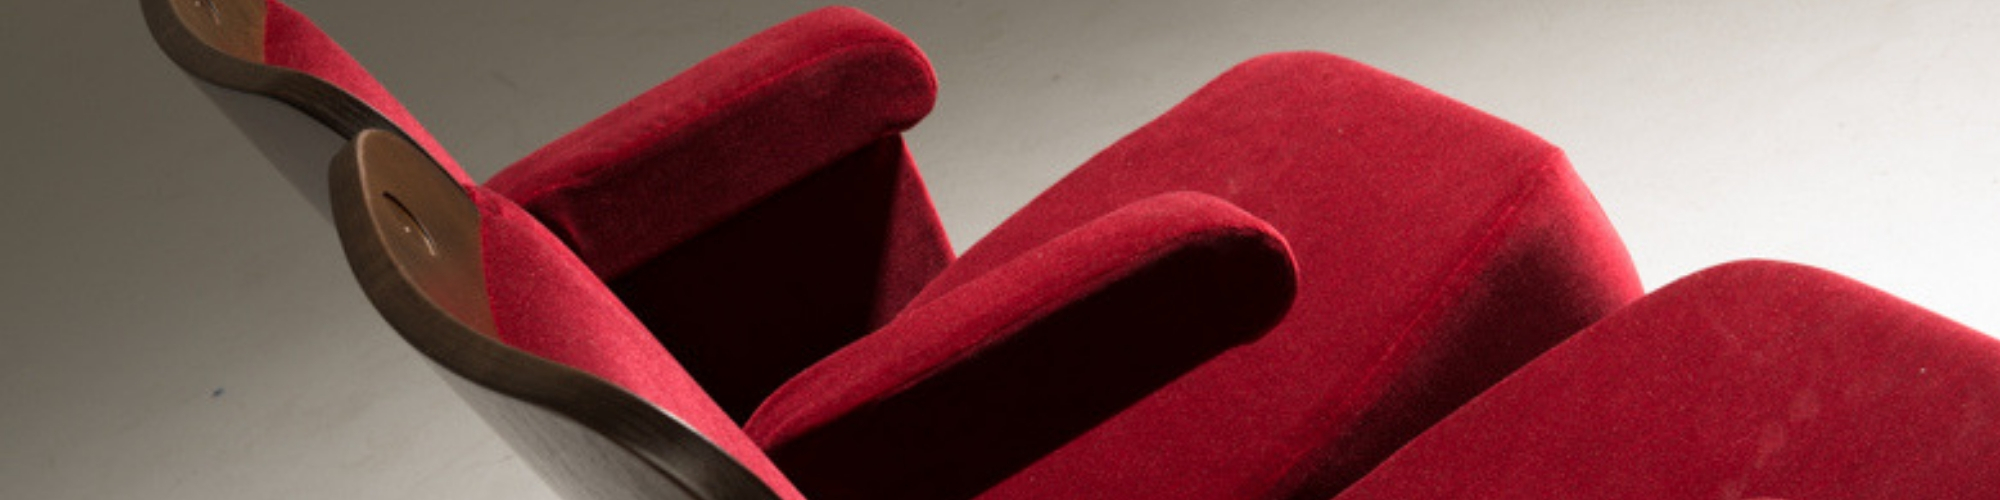 Close up of Evertaut Ambassador theatre seat upholstered in red velvet